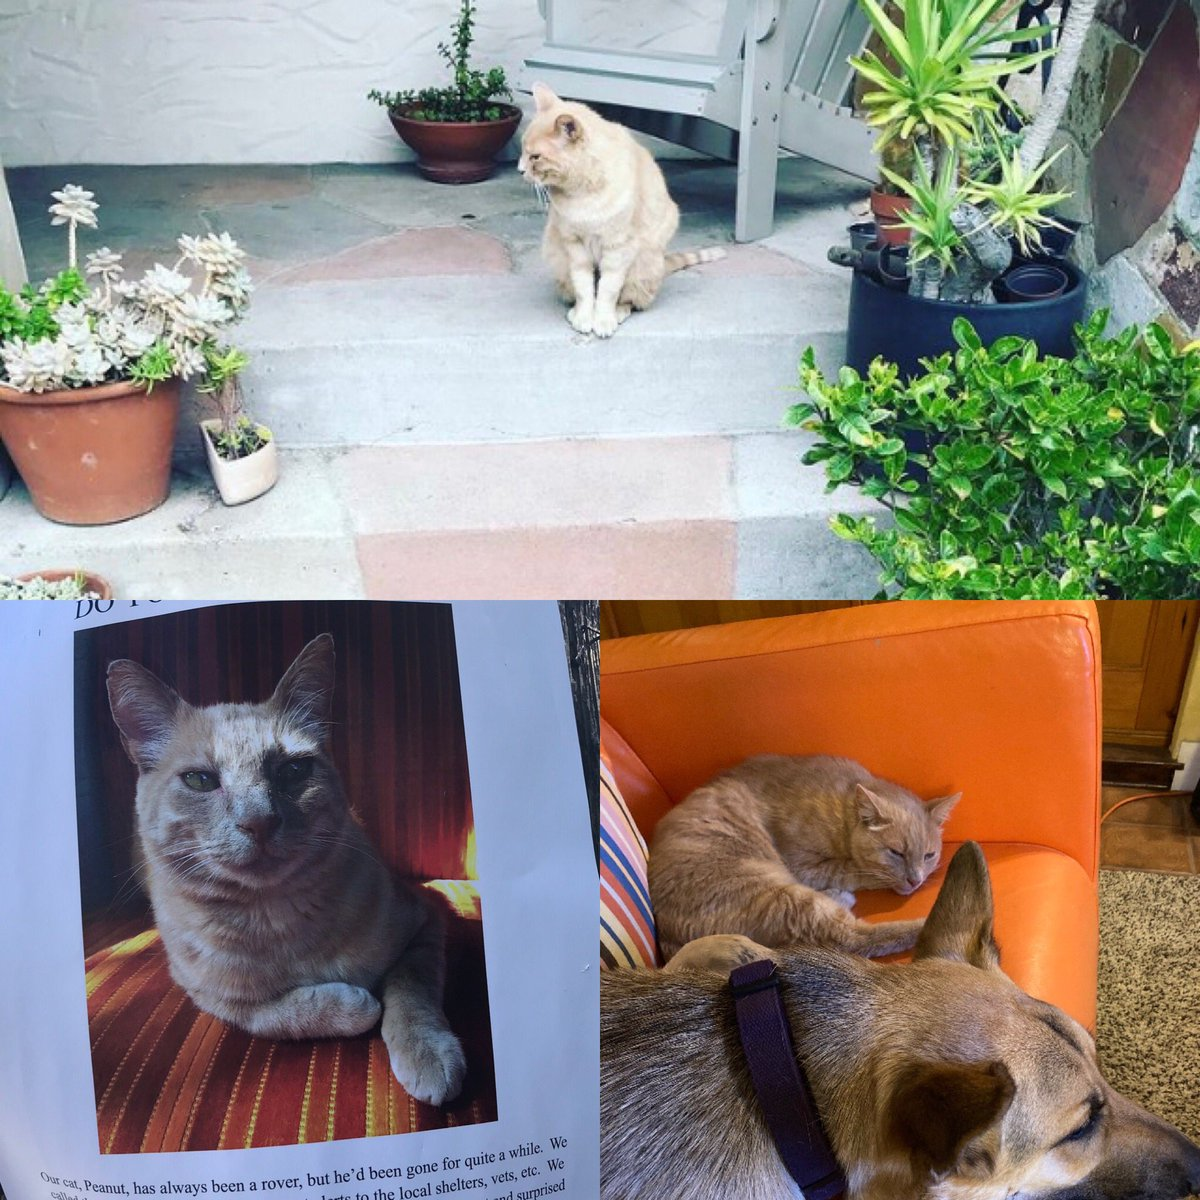 @thechrisbarron A happy #Caturday story: in May, a friendly tabby took up residence on our front porch. We fed him, gave him a bed—couldn't invite him bc Maz, our dog. Then on Thurs, we saw flyers for a lost tabby named Peanut who's a rover. Same day, he's happily back home—and inside for now 🙂